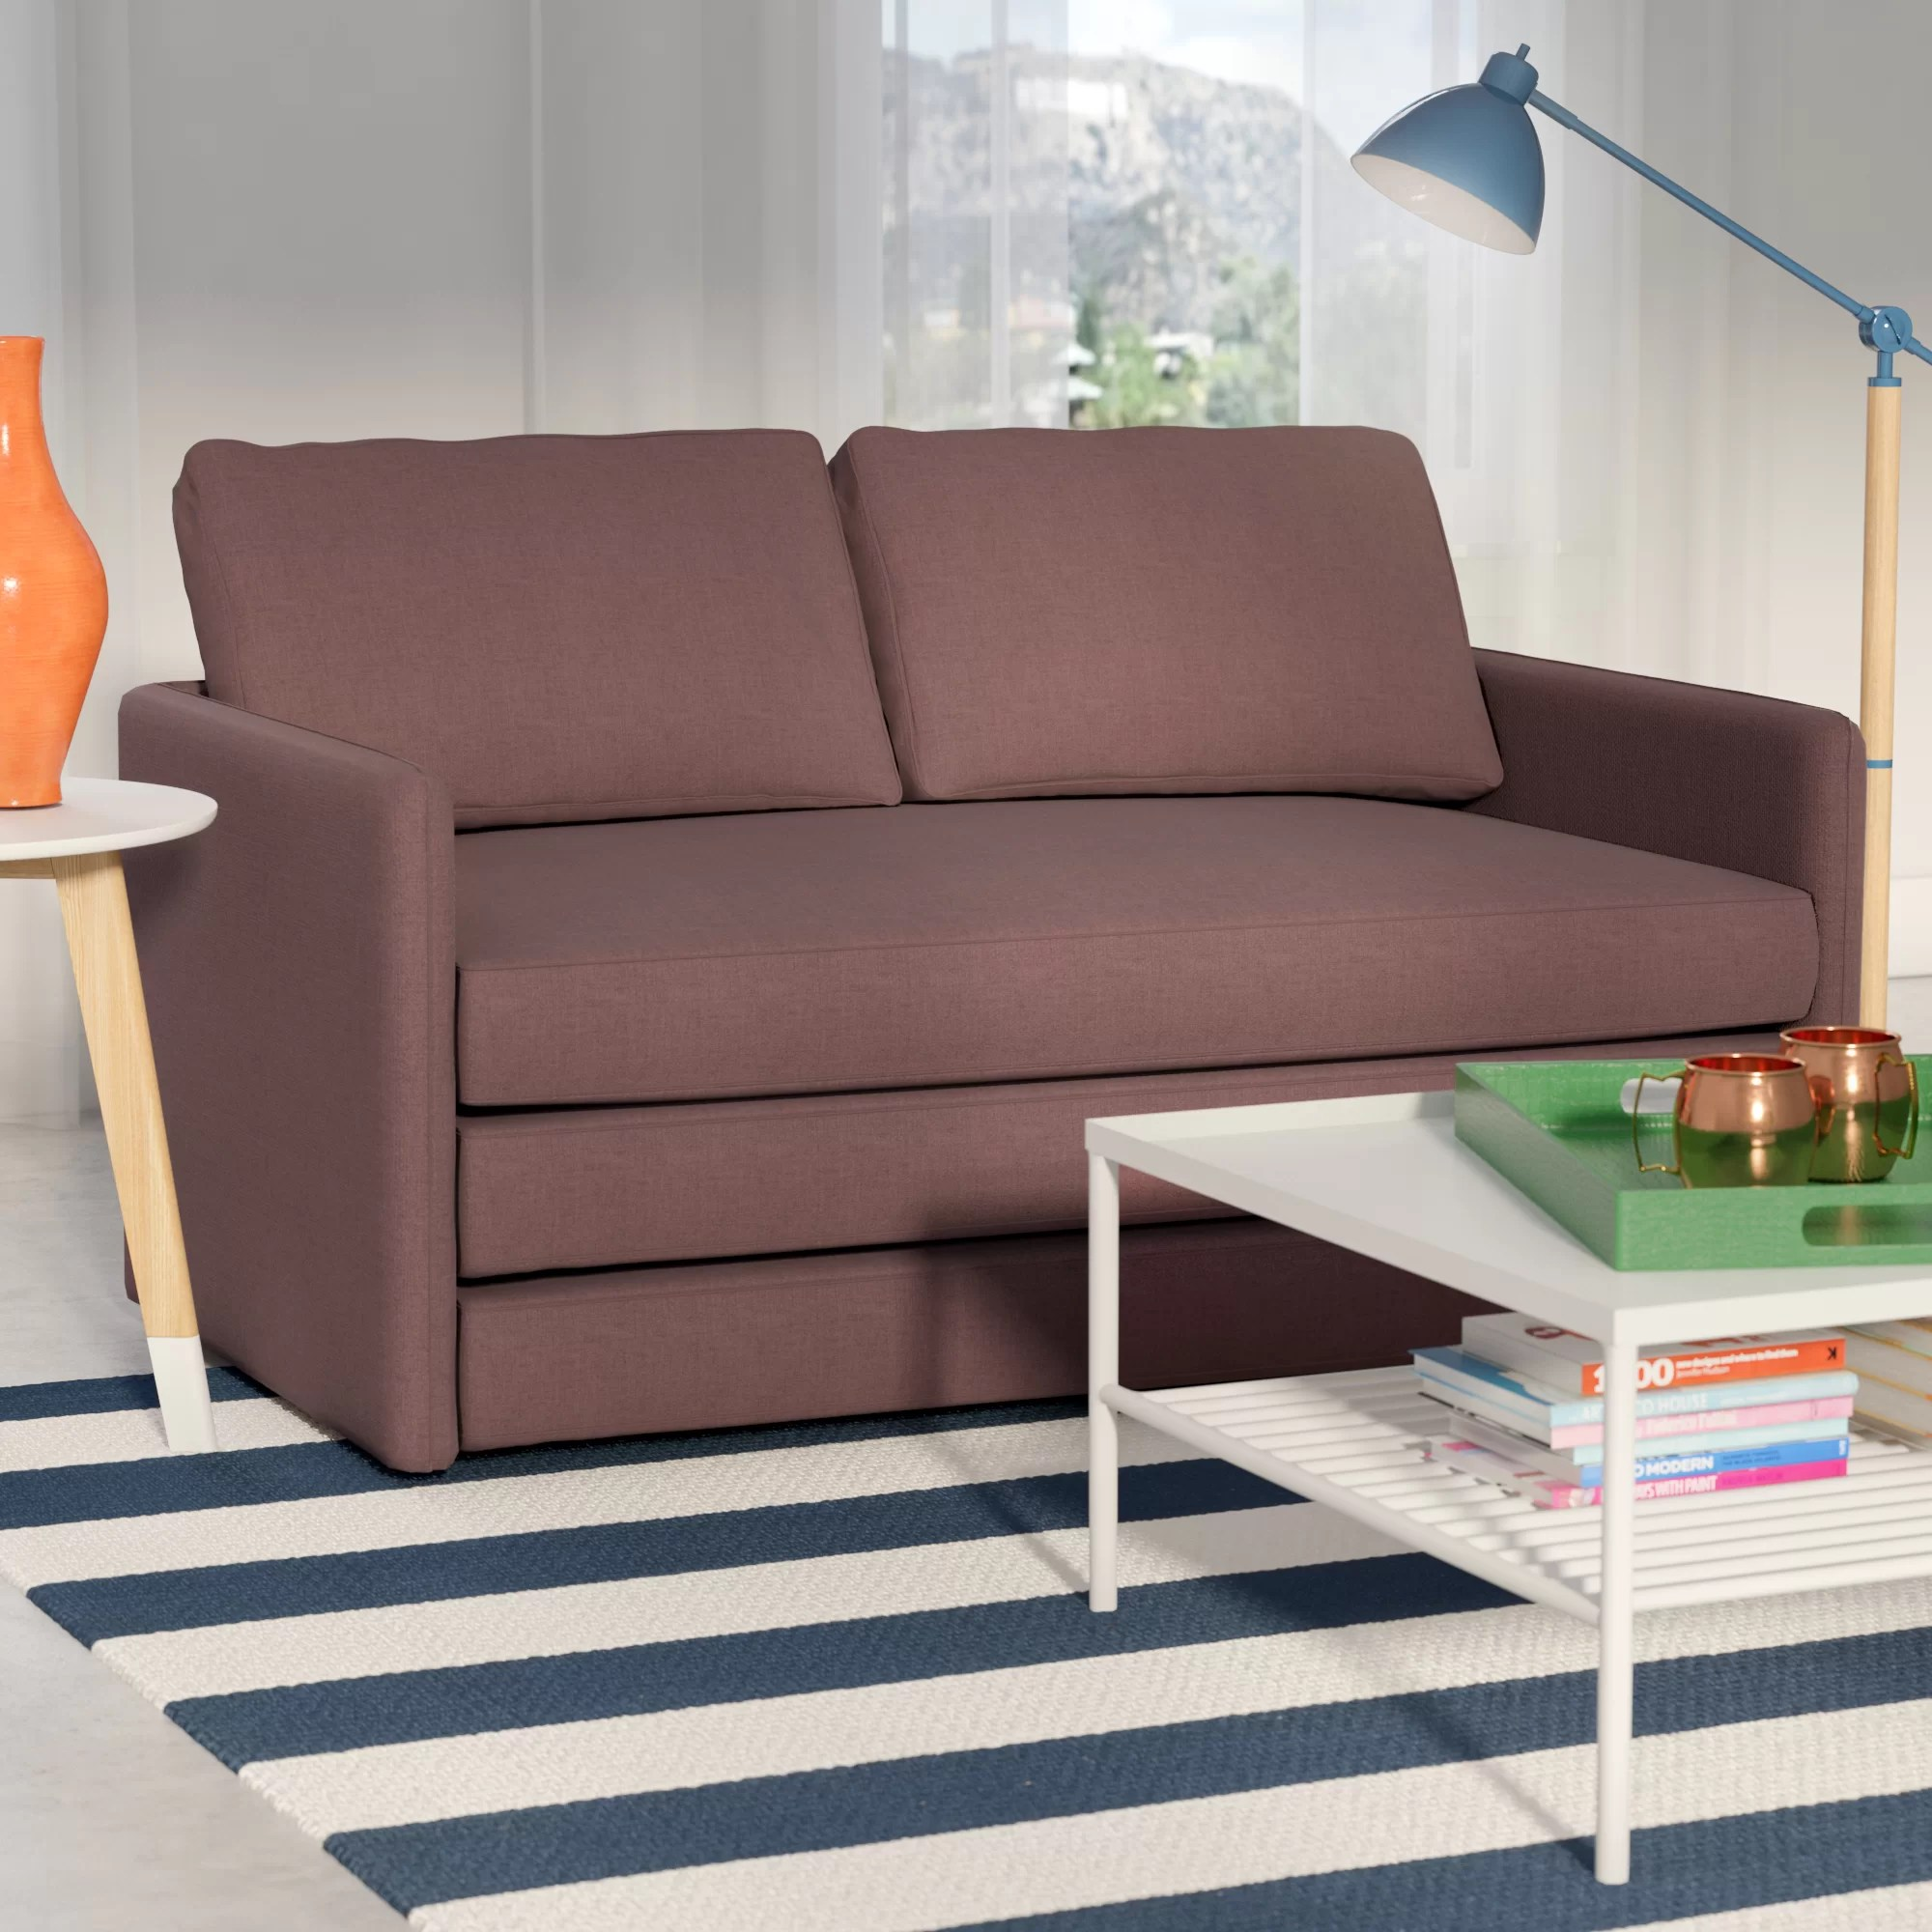 Sofa Bed Express Delivery Earl Reversible Sleeper